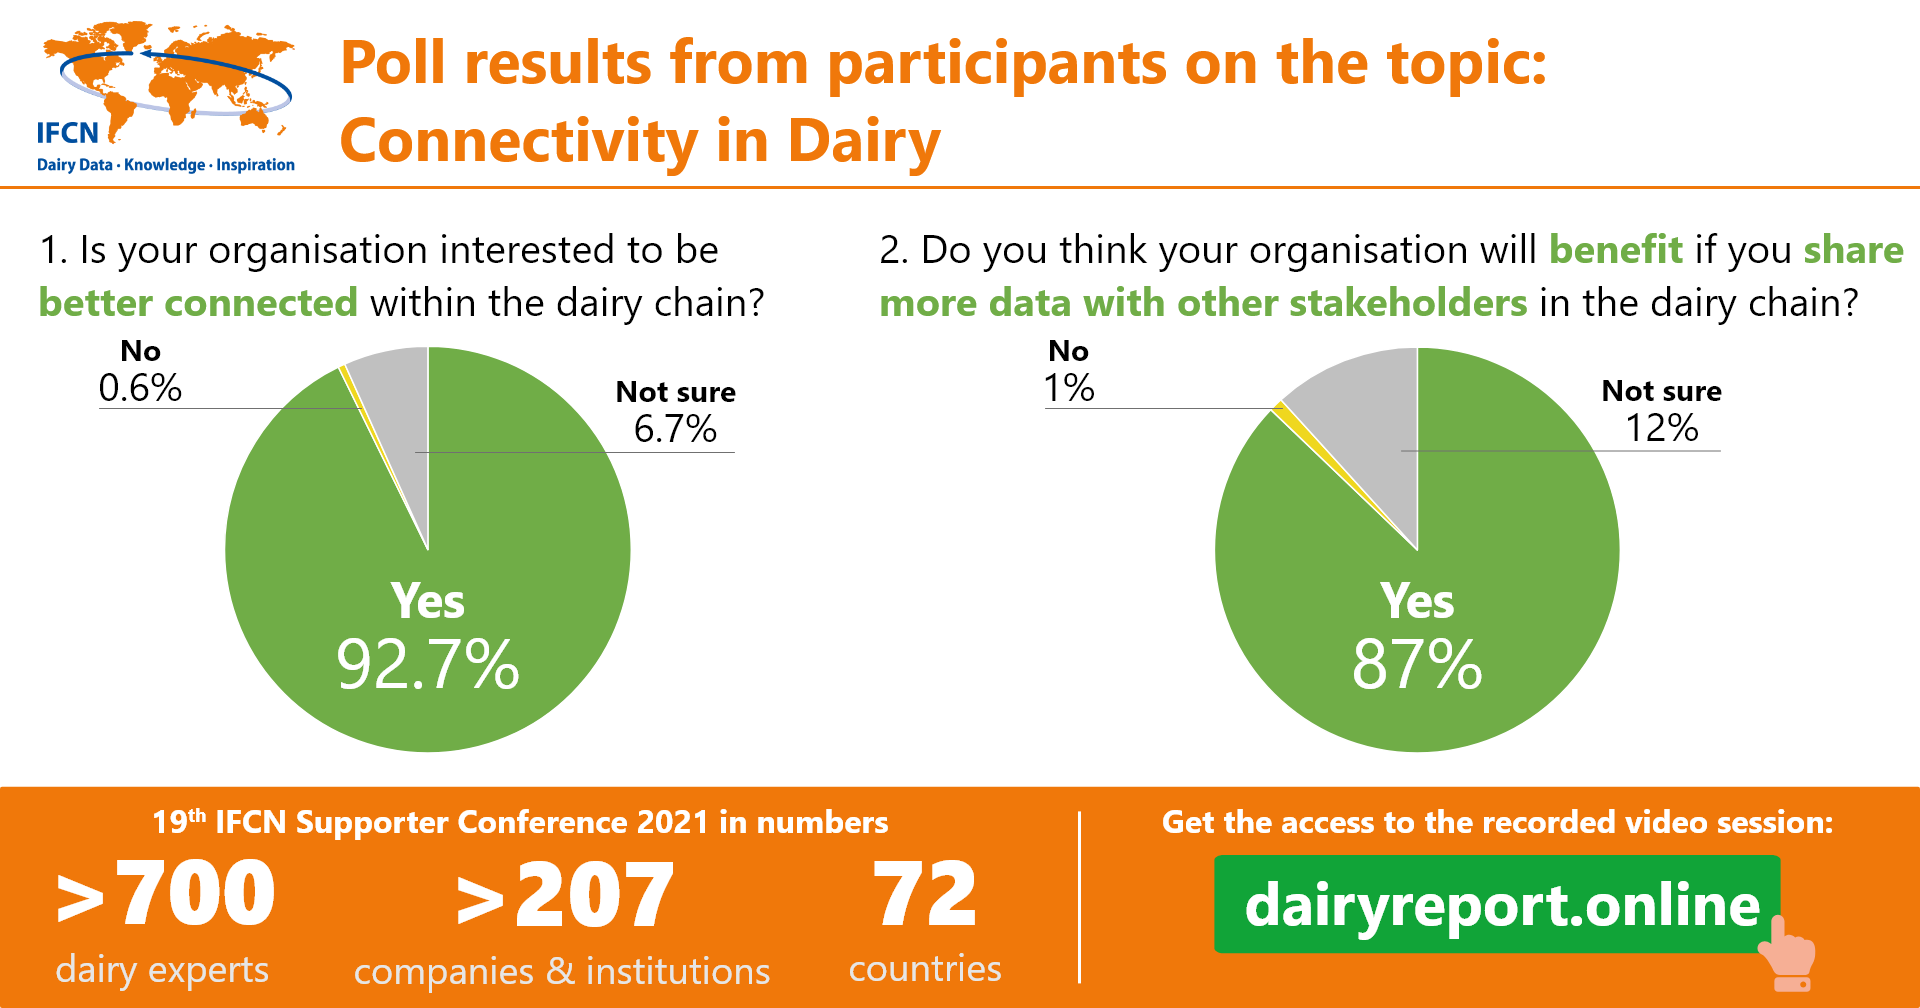 Connectivity in dairy